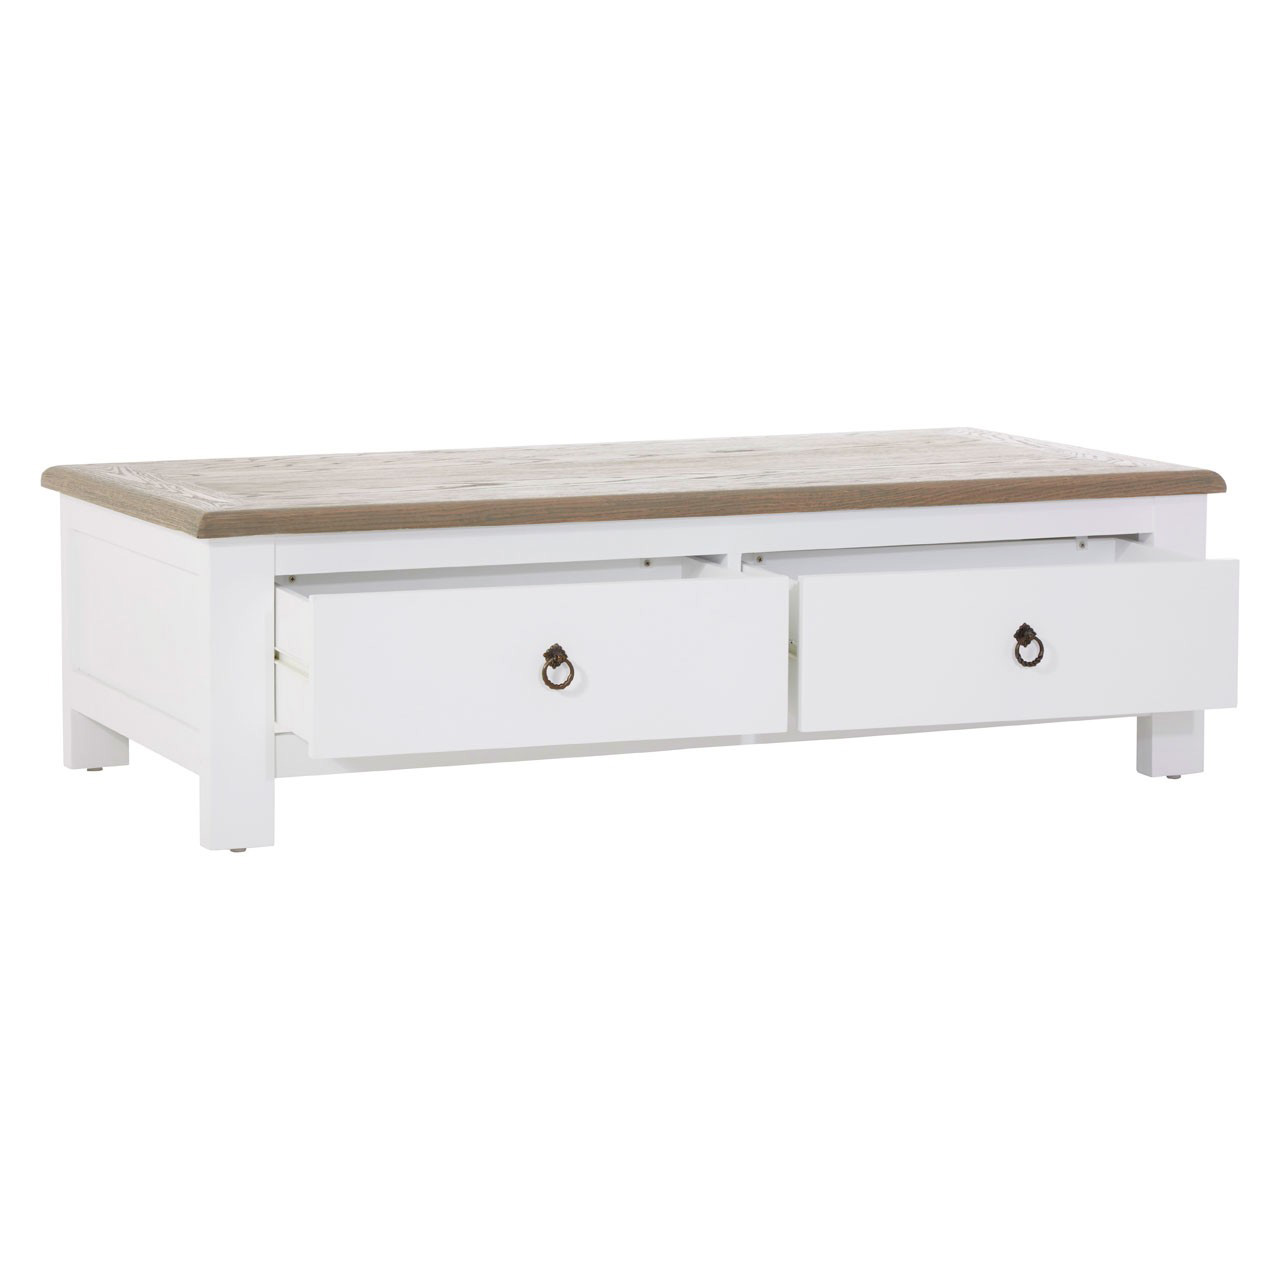 Hampstead White & Oak Large Coffee Table - 4 Drawers